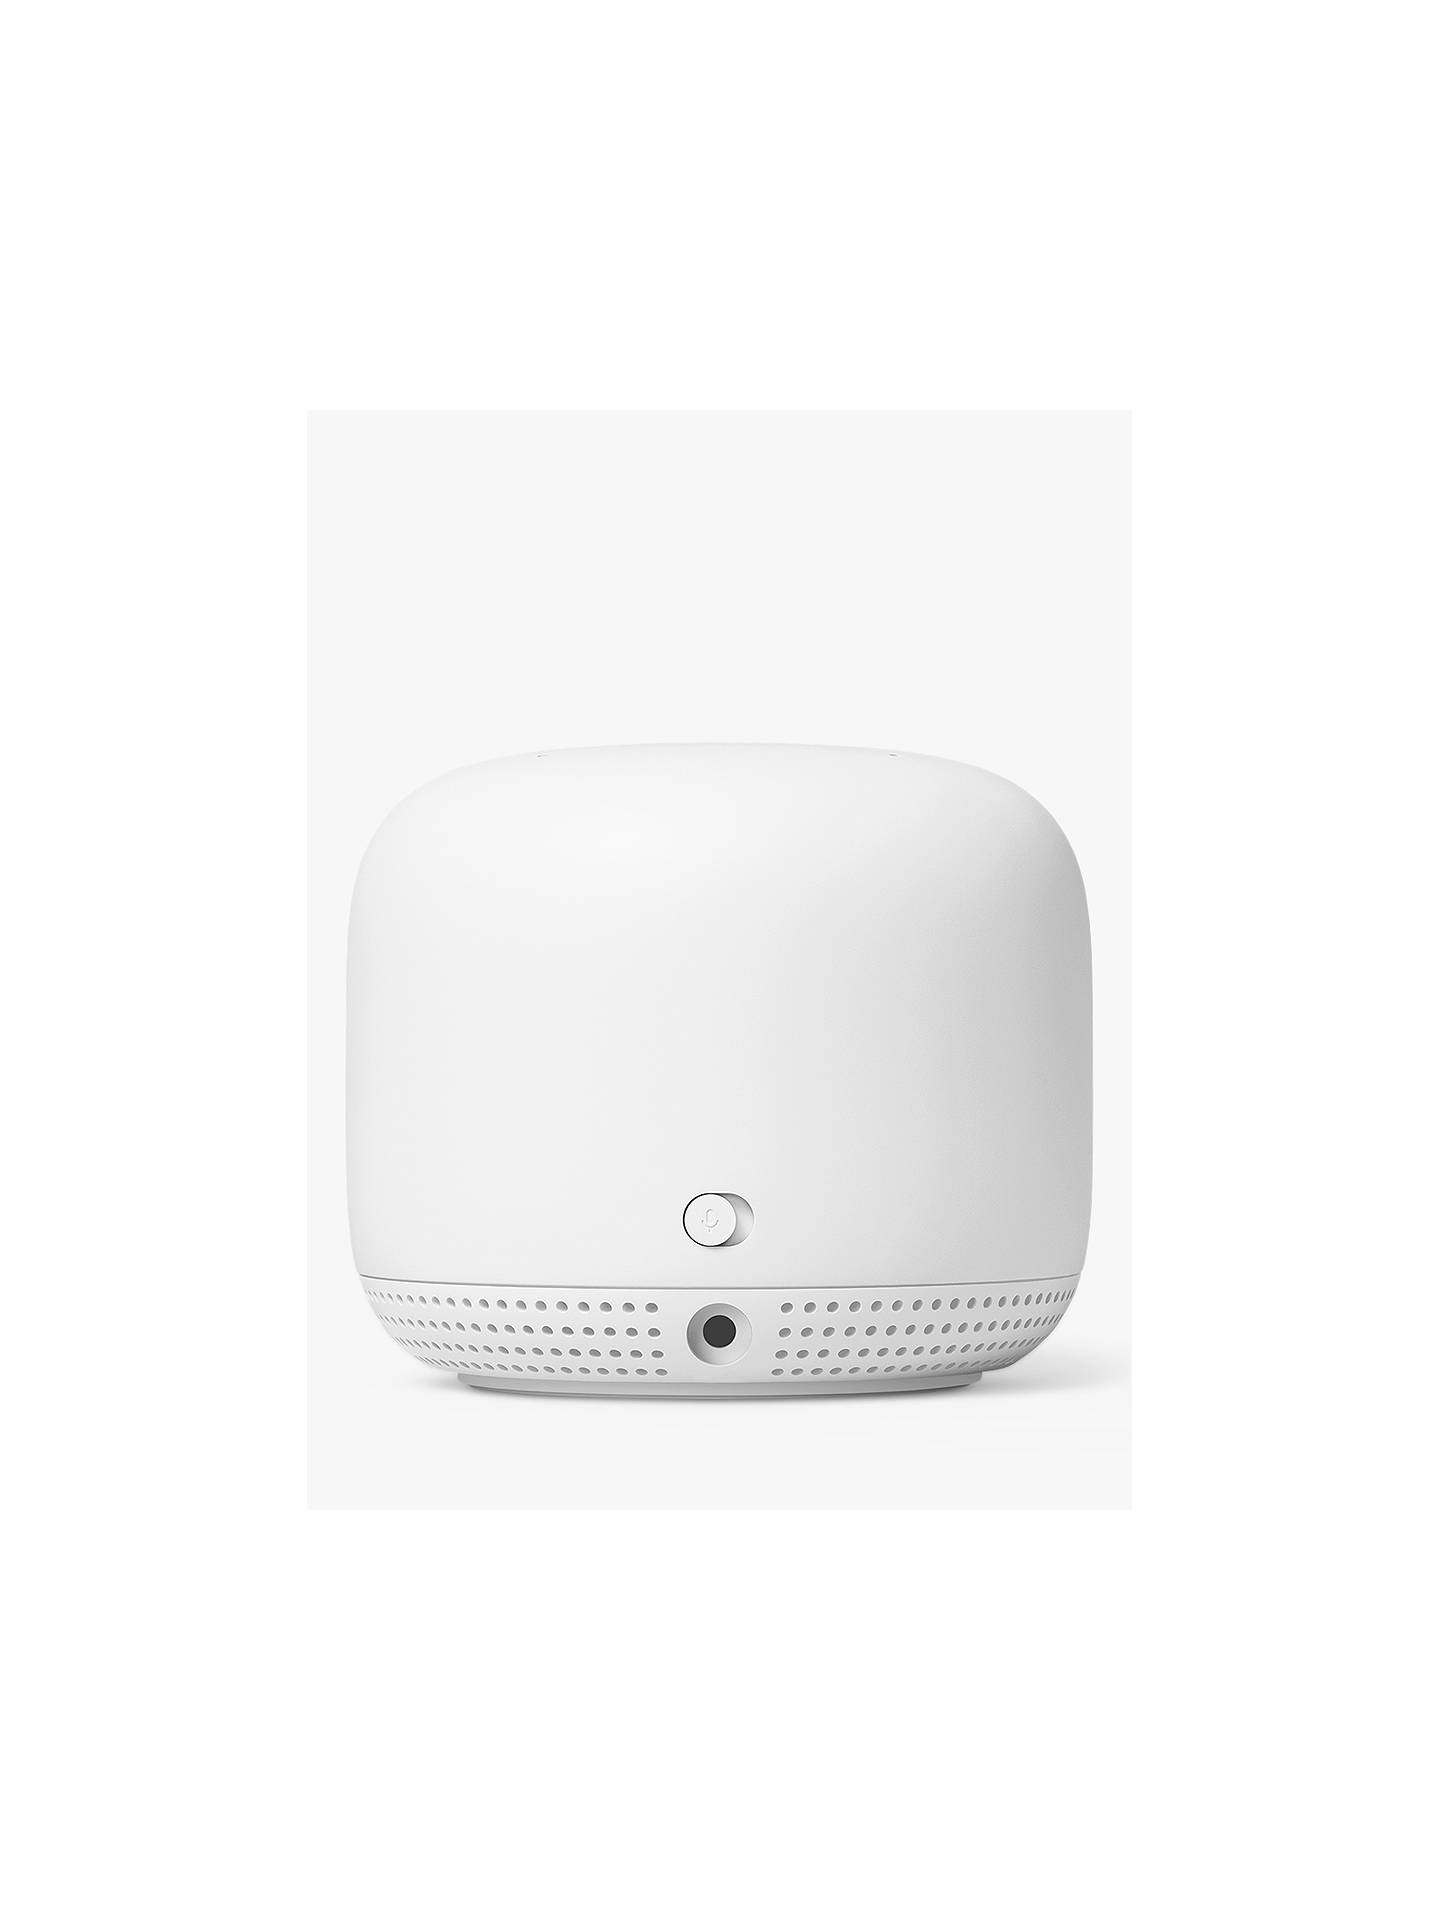 Buy Google Nest Wi-Fi Router with One Google Nest Wi-Fi Point Add-on Wi-Fi Extender Online at johnlewis.com